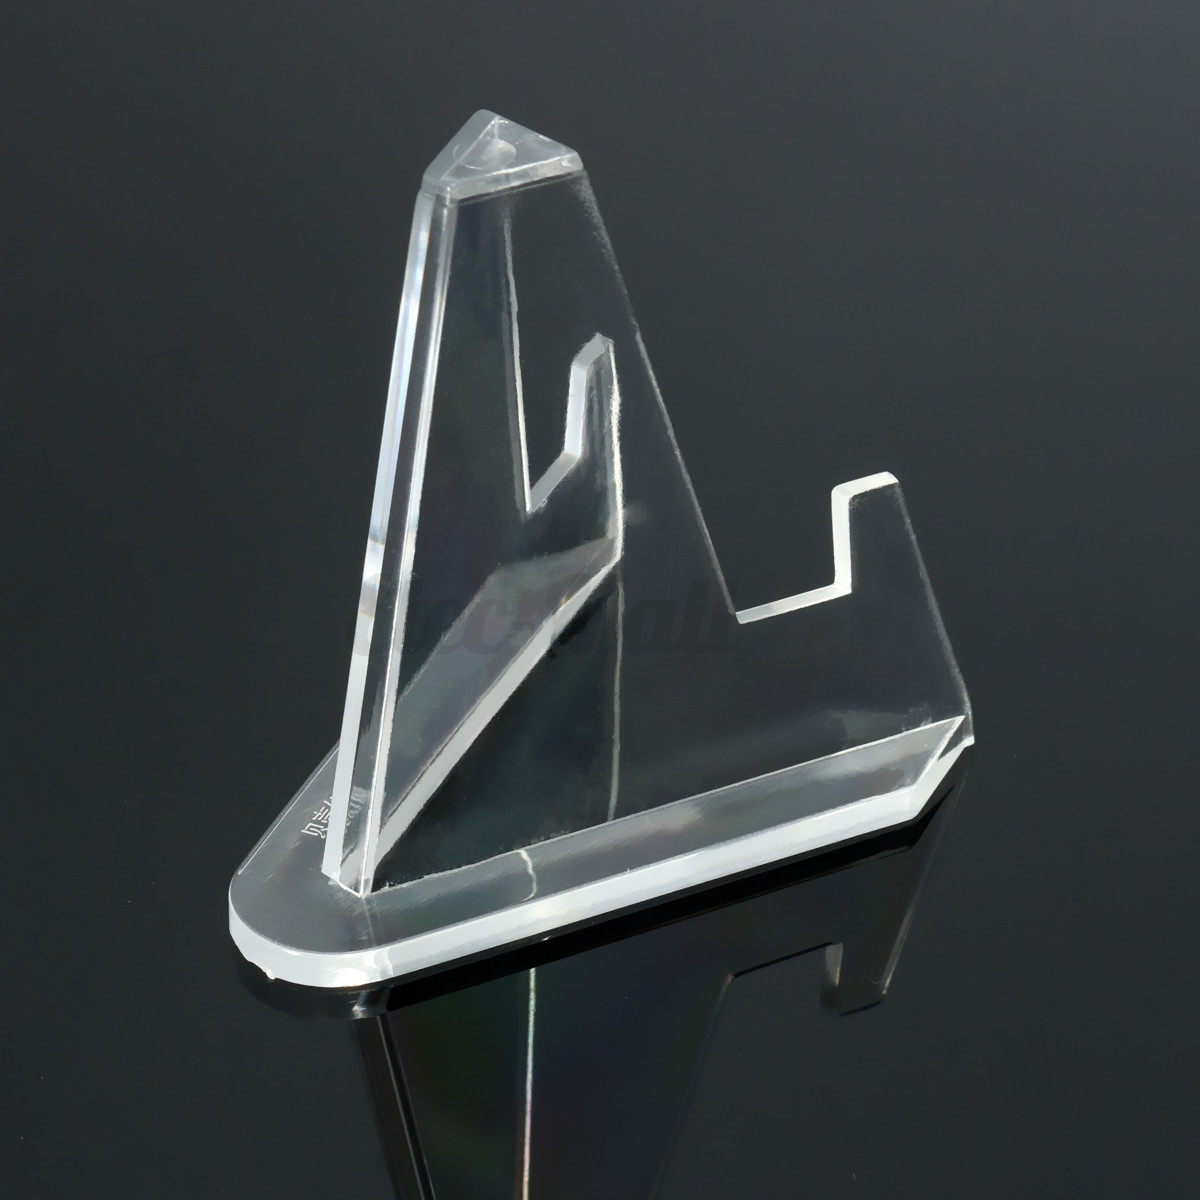 acrylic coin display stand